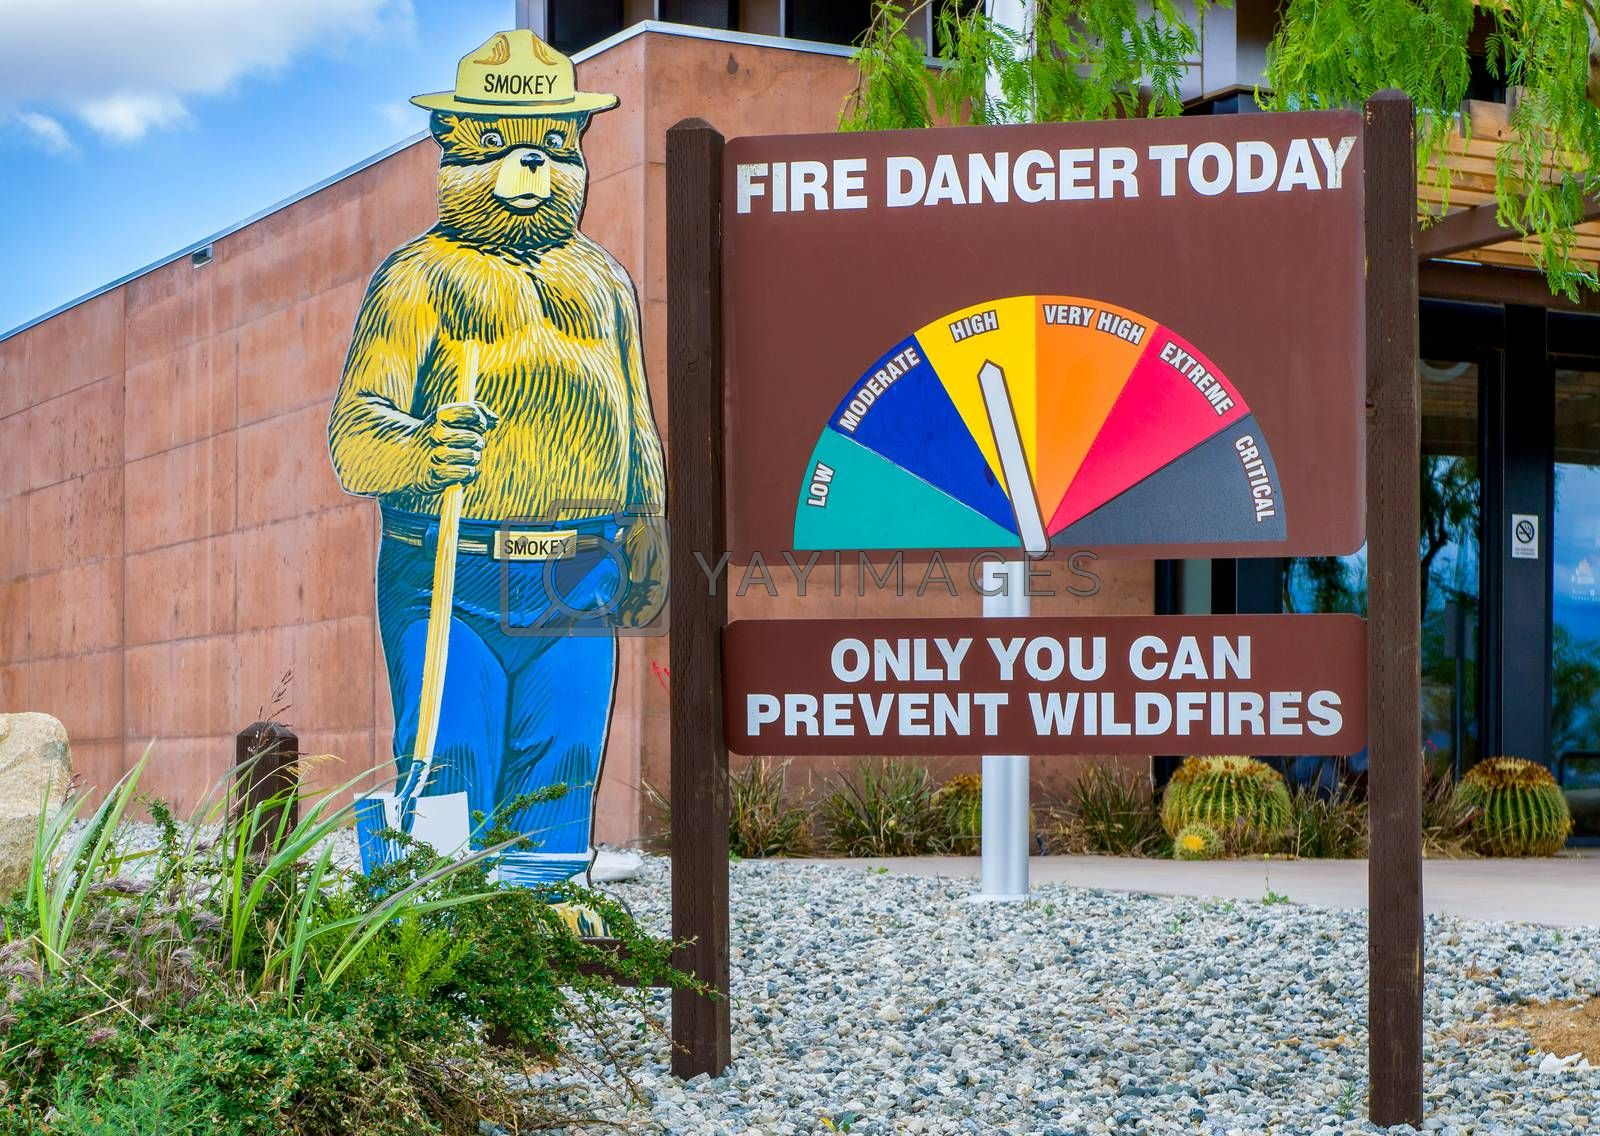 ACTON, CA/USA - MAY 7, 2016: Smokey Bear mascot and fire danger sign. Smokey the Bear is an advertising mascot to educate the public about forest fires.